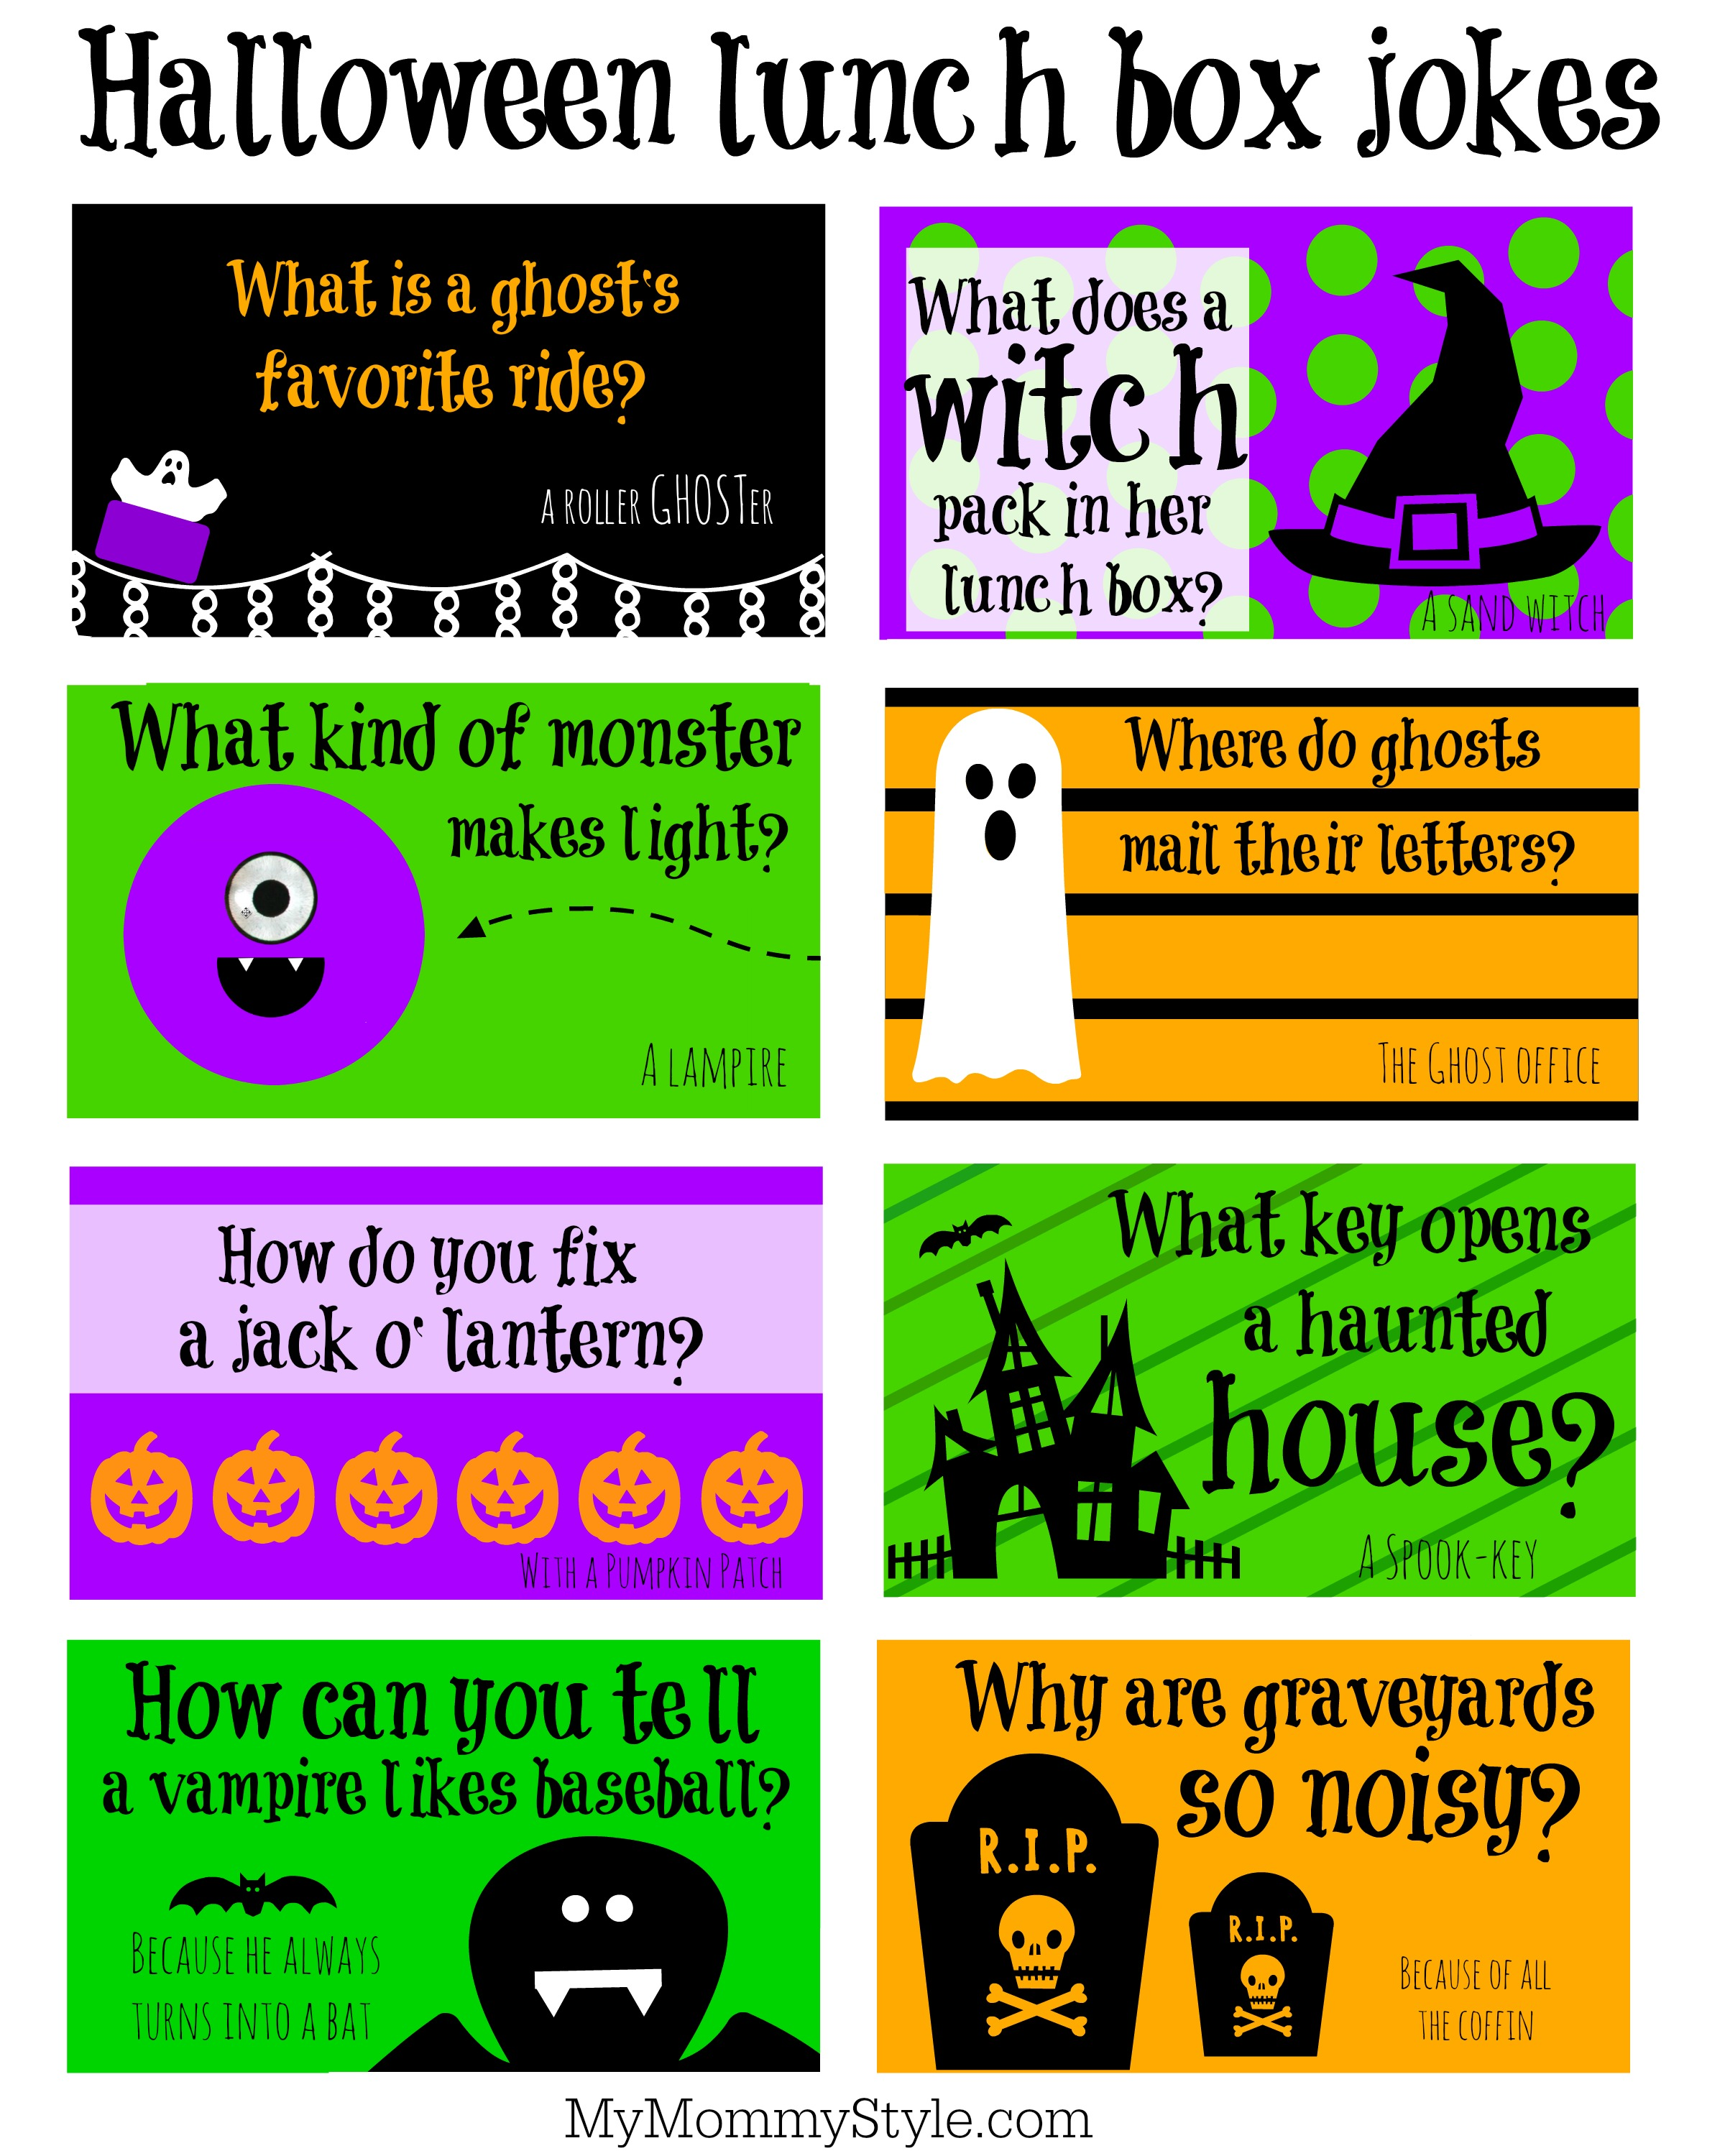 Halloween Lunchbox jokes - My Mommy Style